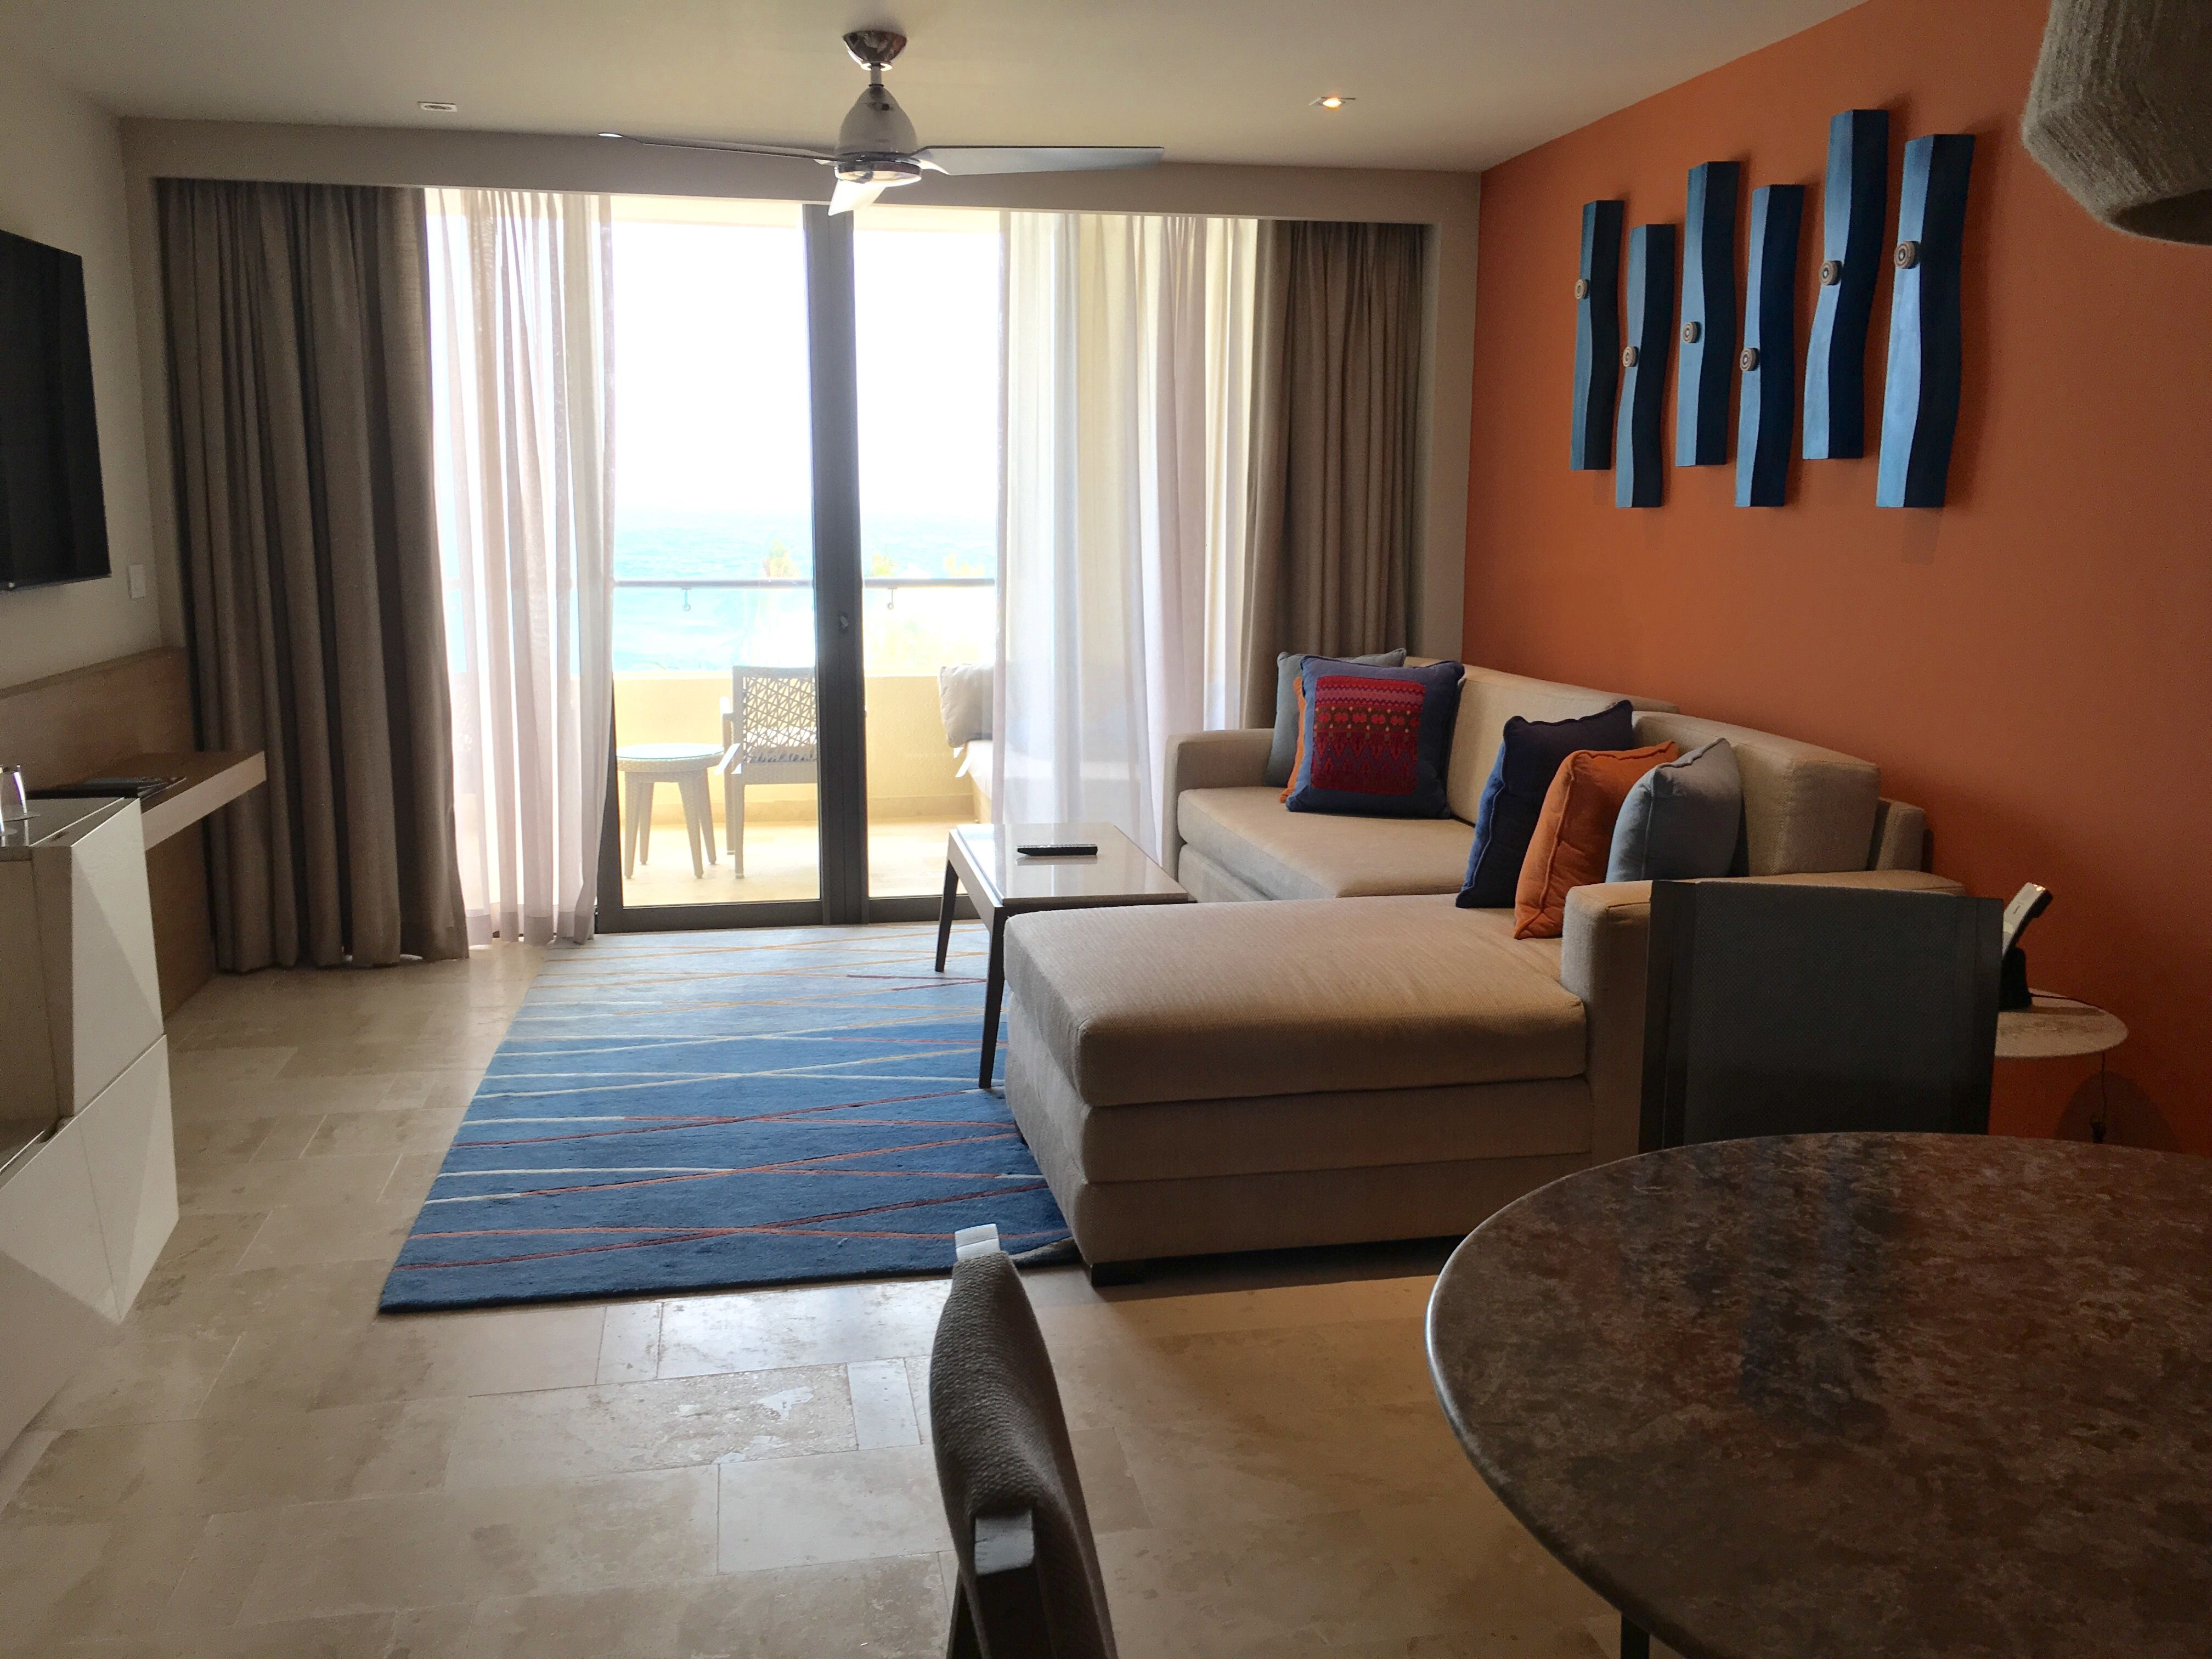 2 bedroom suites in florida%0A Two Story Pyramid Suite at the Hyatt Ziva Cancun